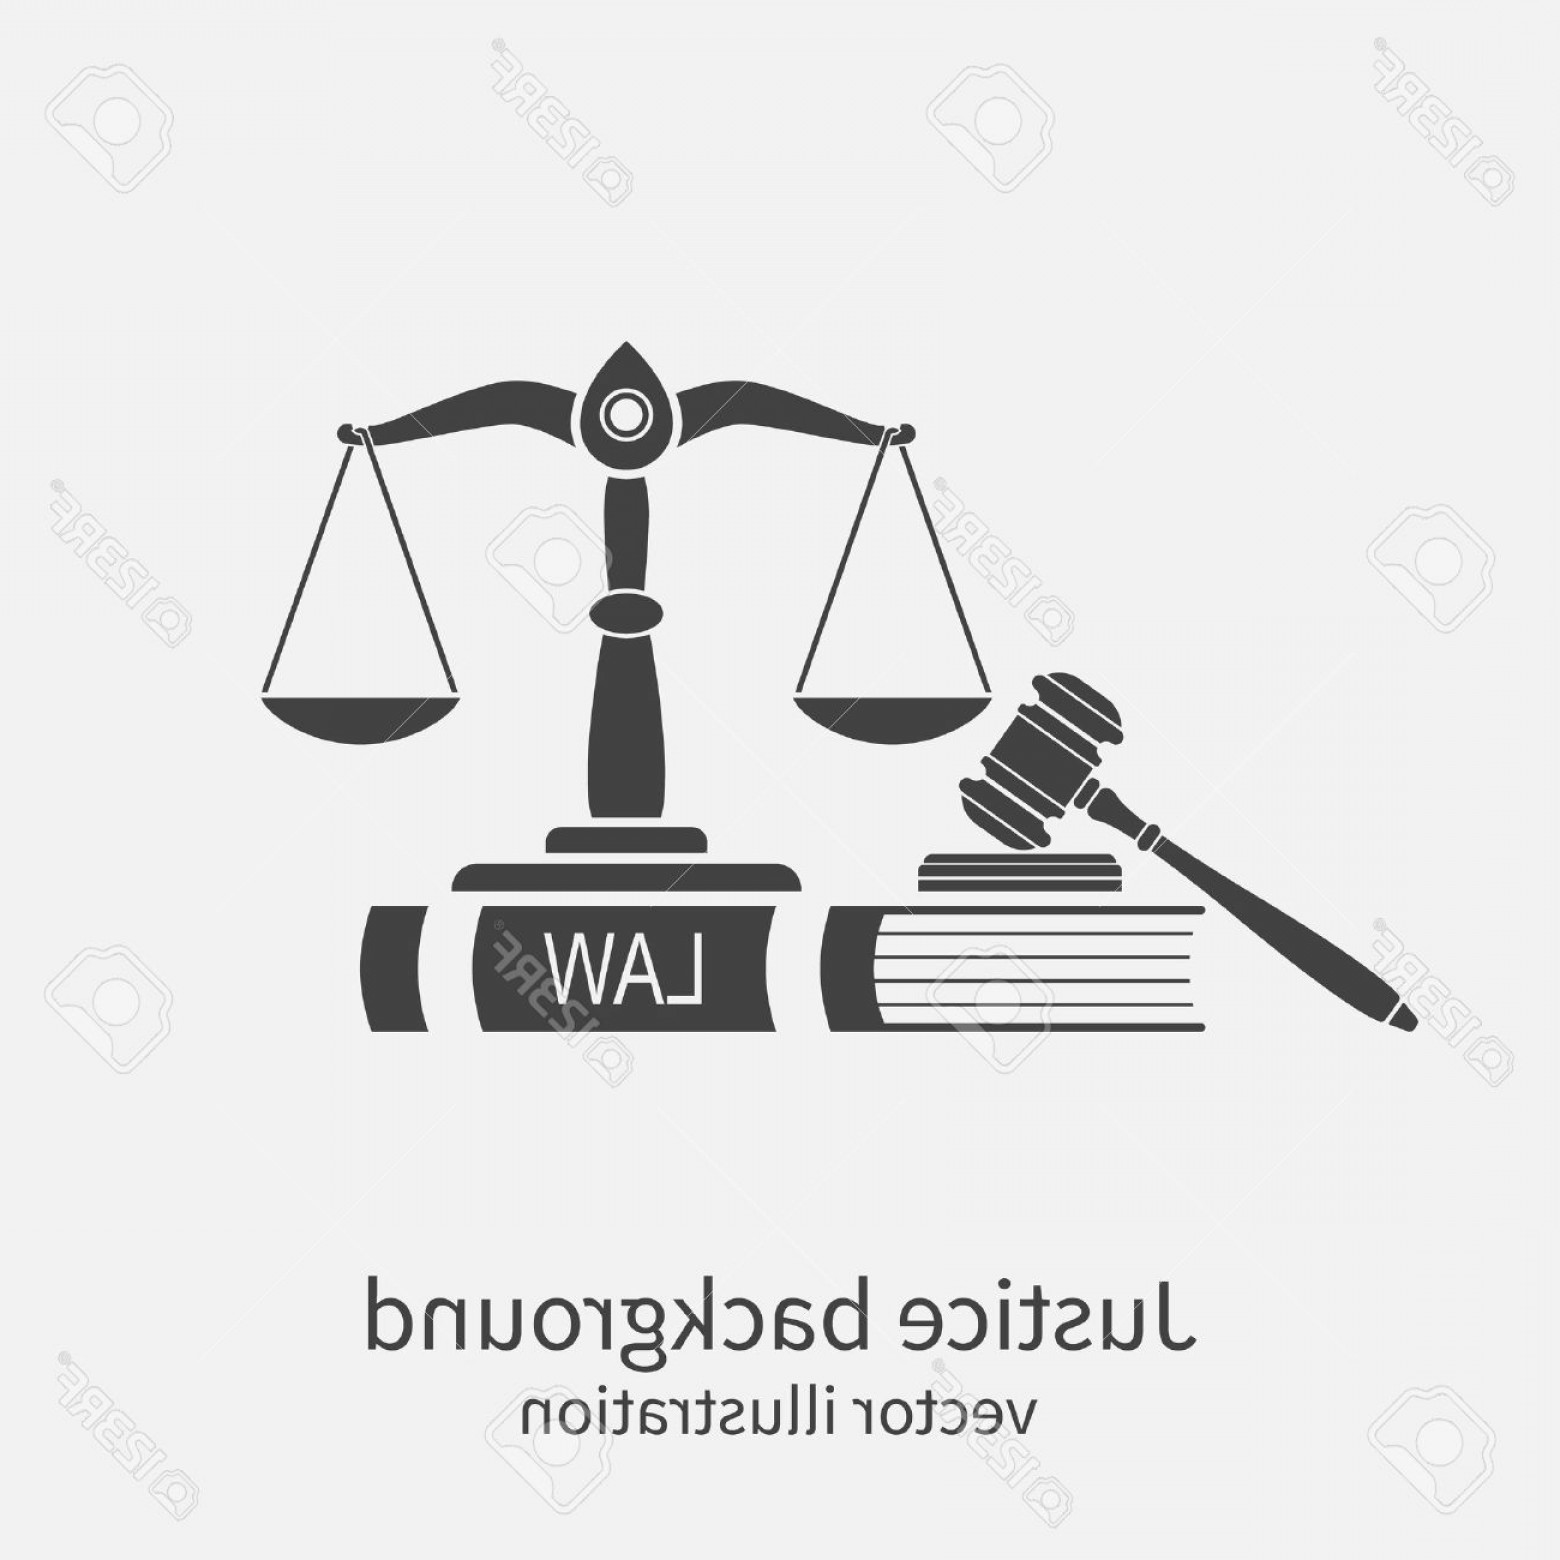 1560x1560 Photostock Vector Symbol Of Law And Justice Concept Law And